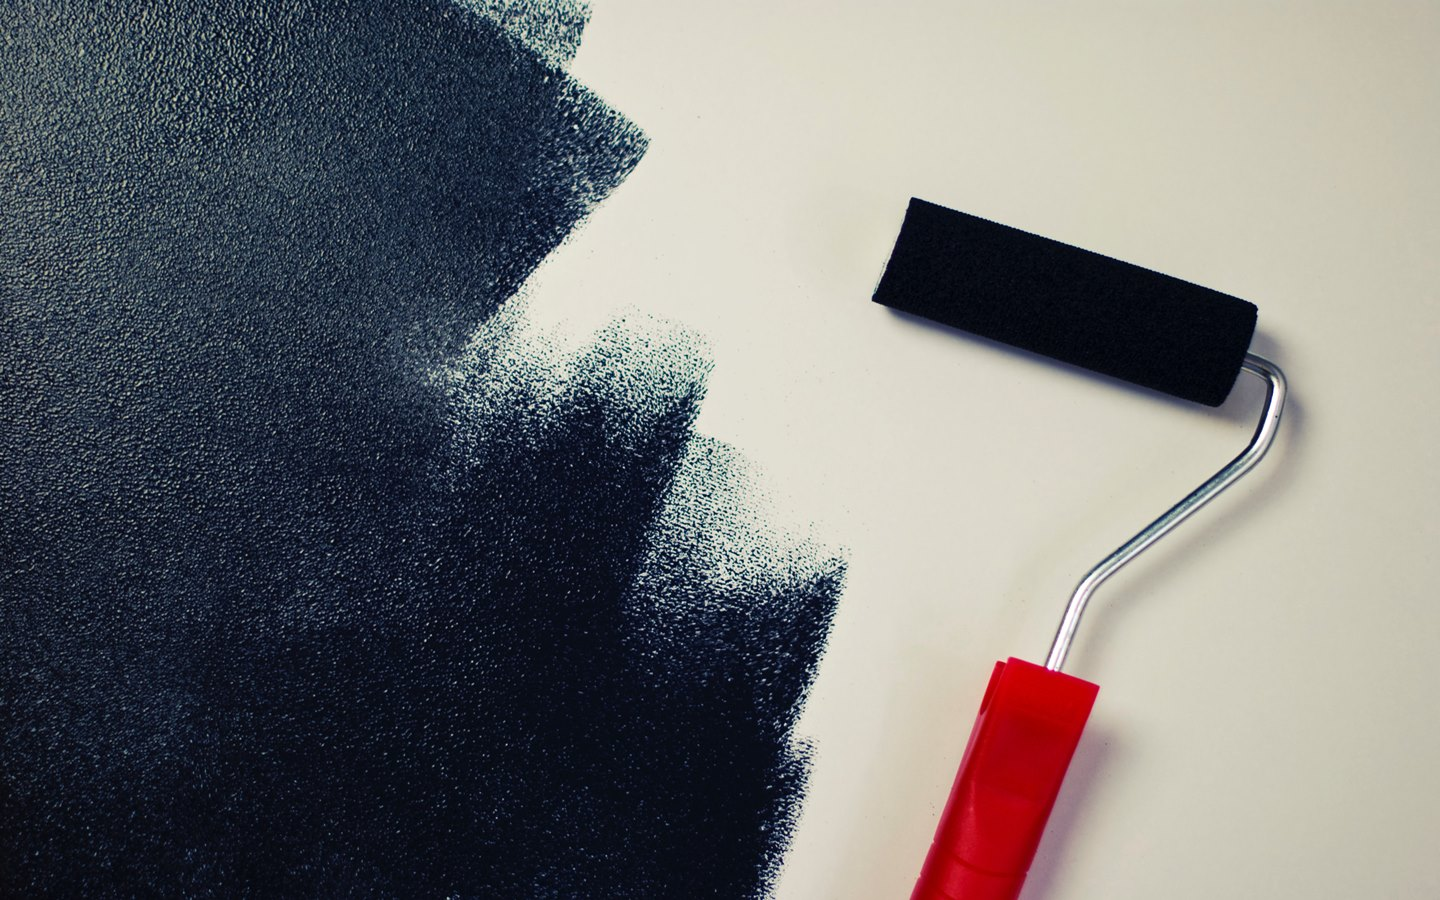 Dark colors make office gloomy and unproductive